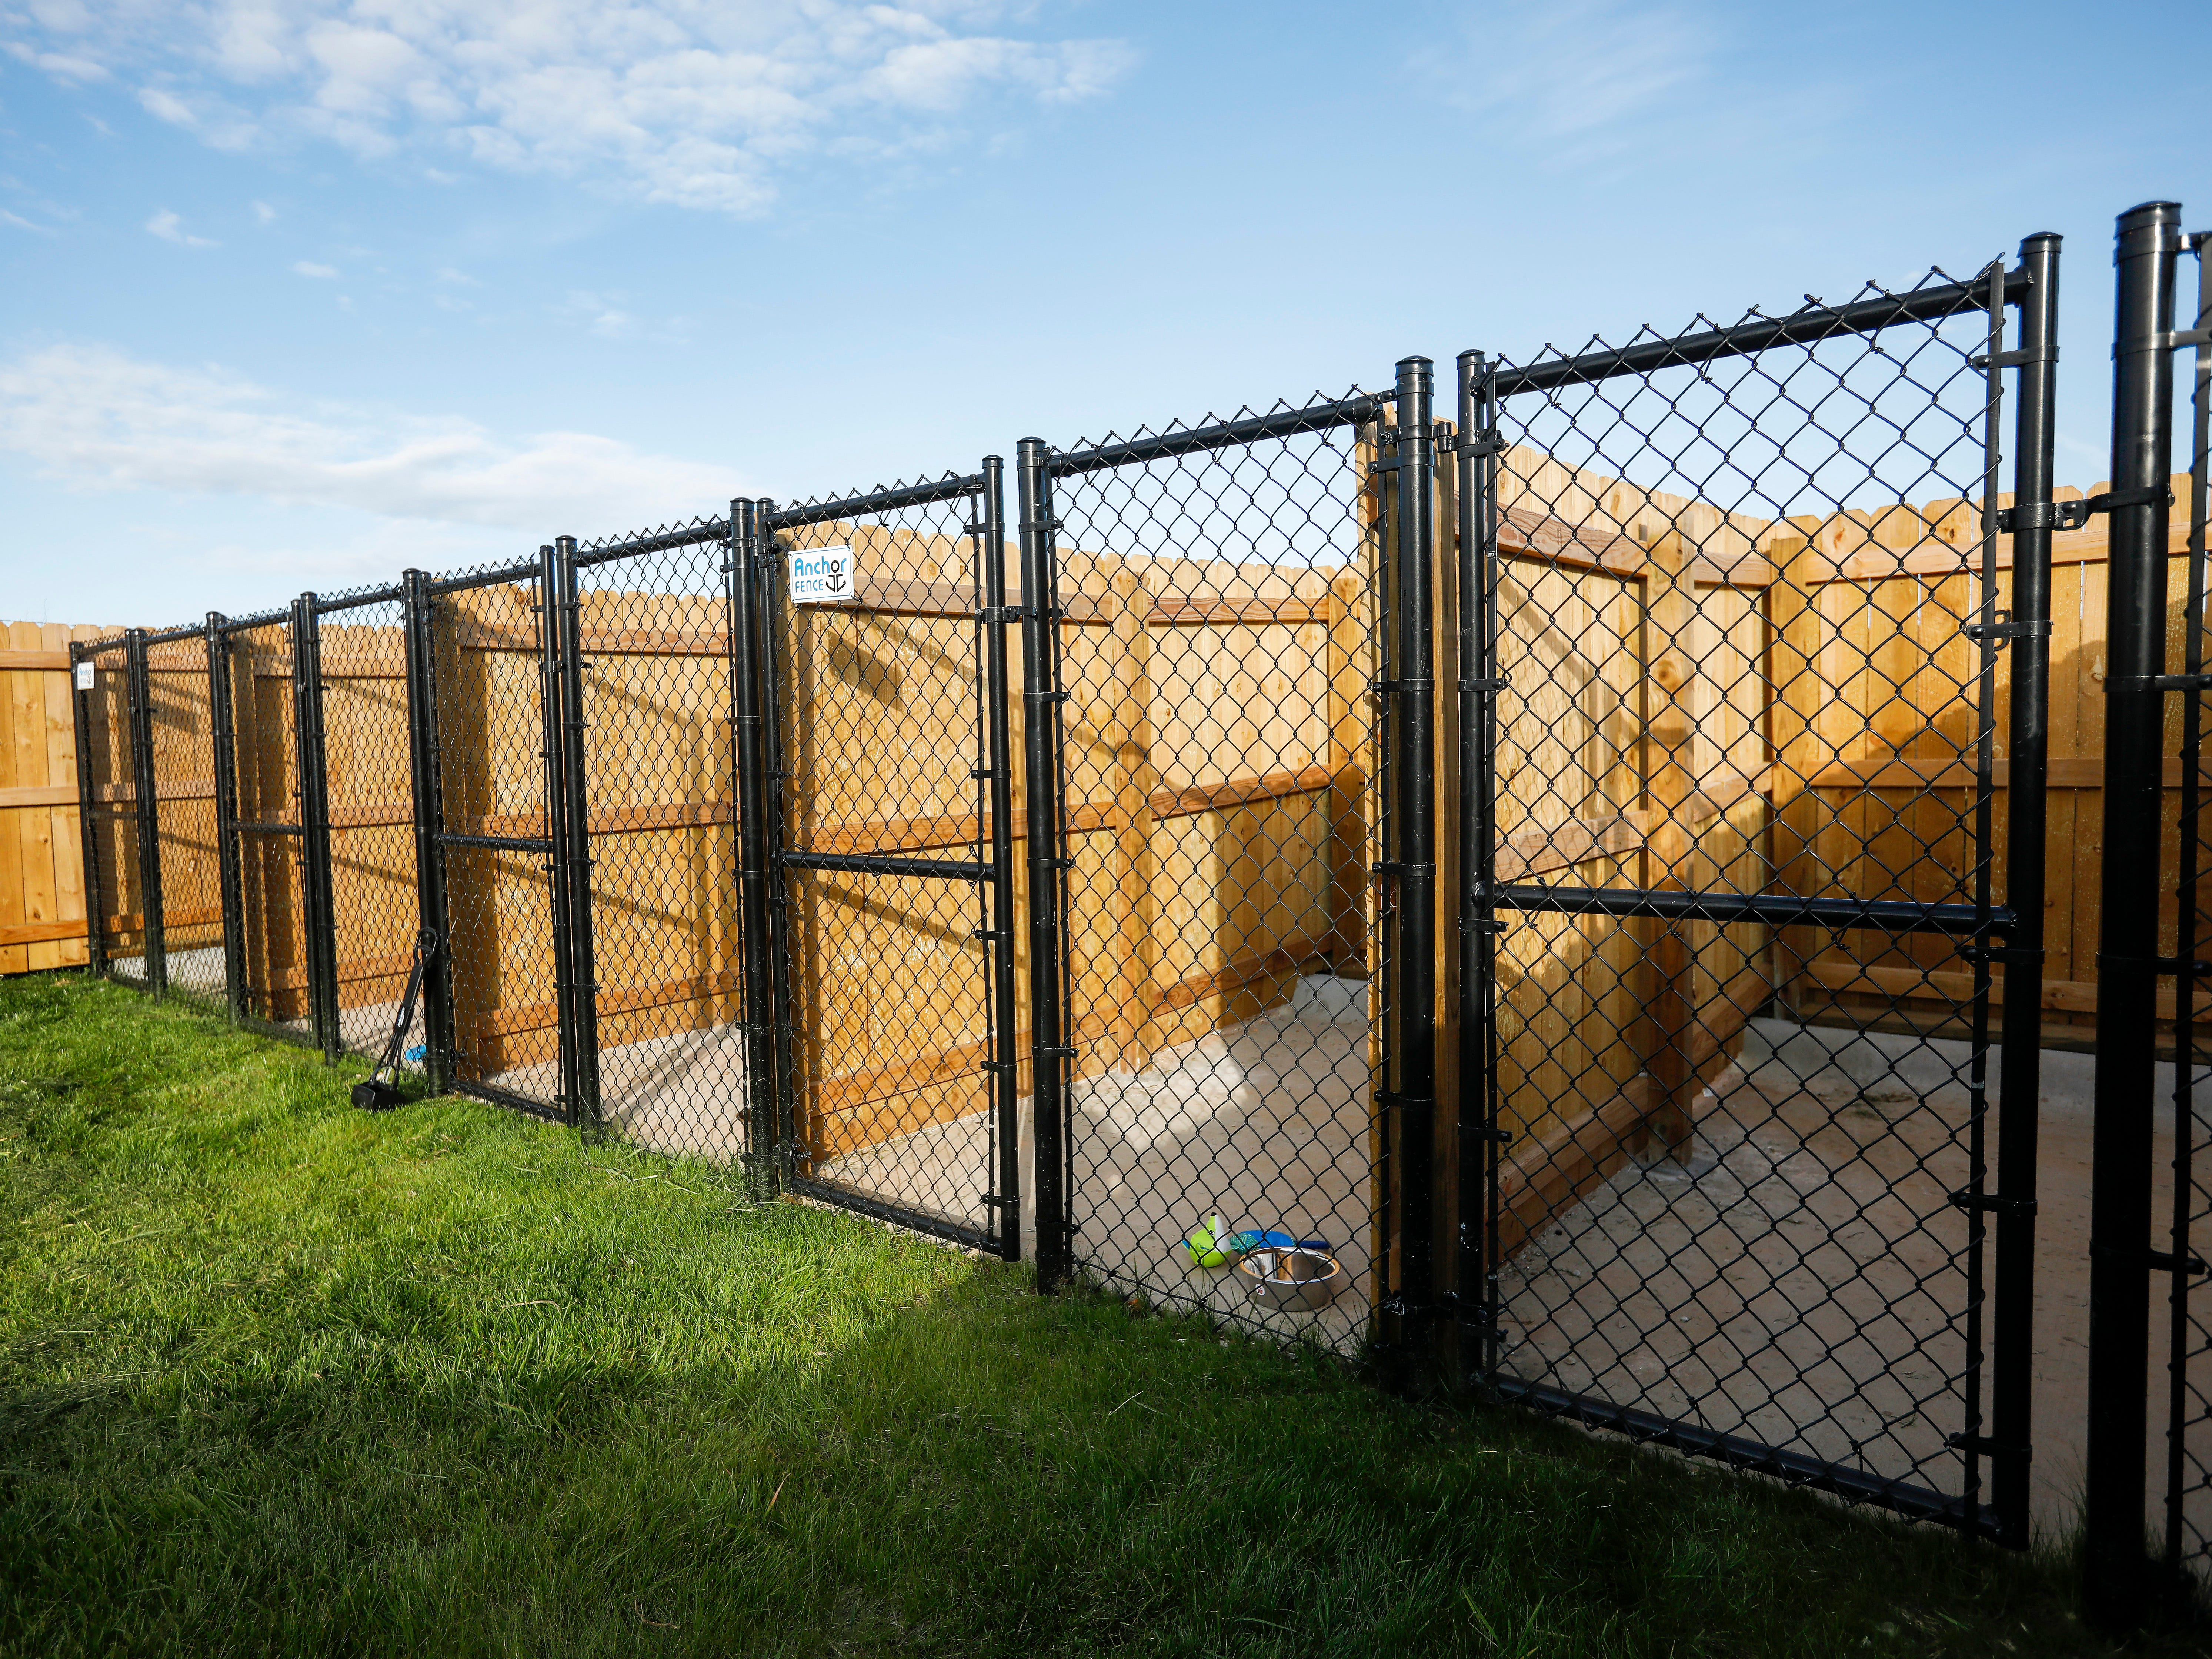 Dog kennels at The Kitchen's new Emergency Shelter located at 1855 E. Chestnut Expressway.